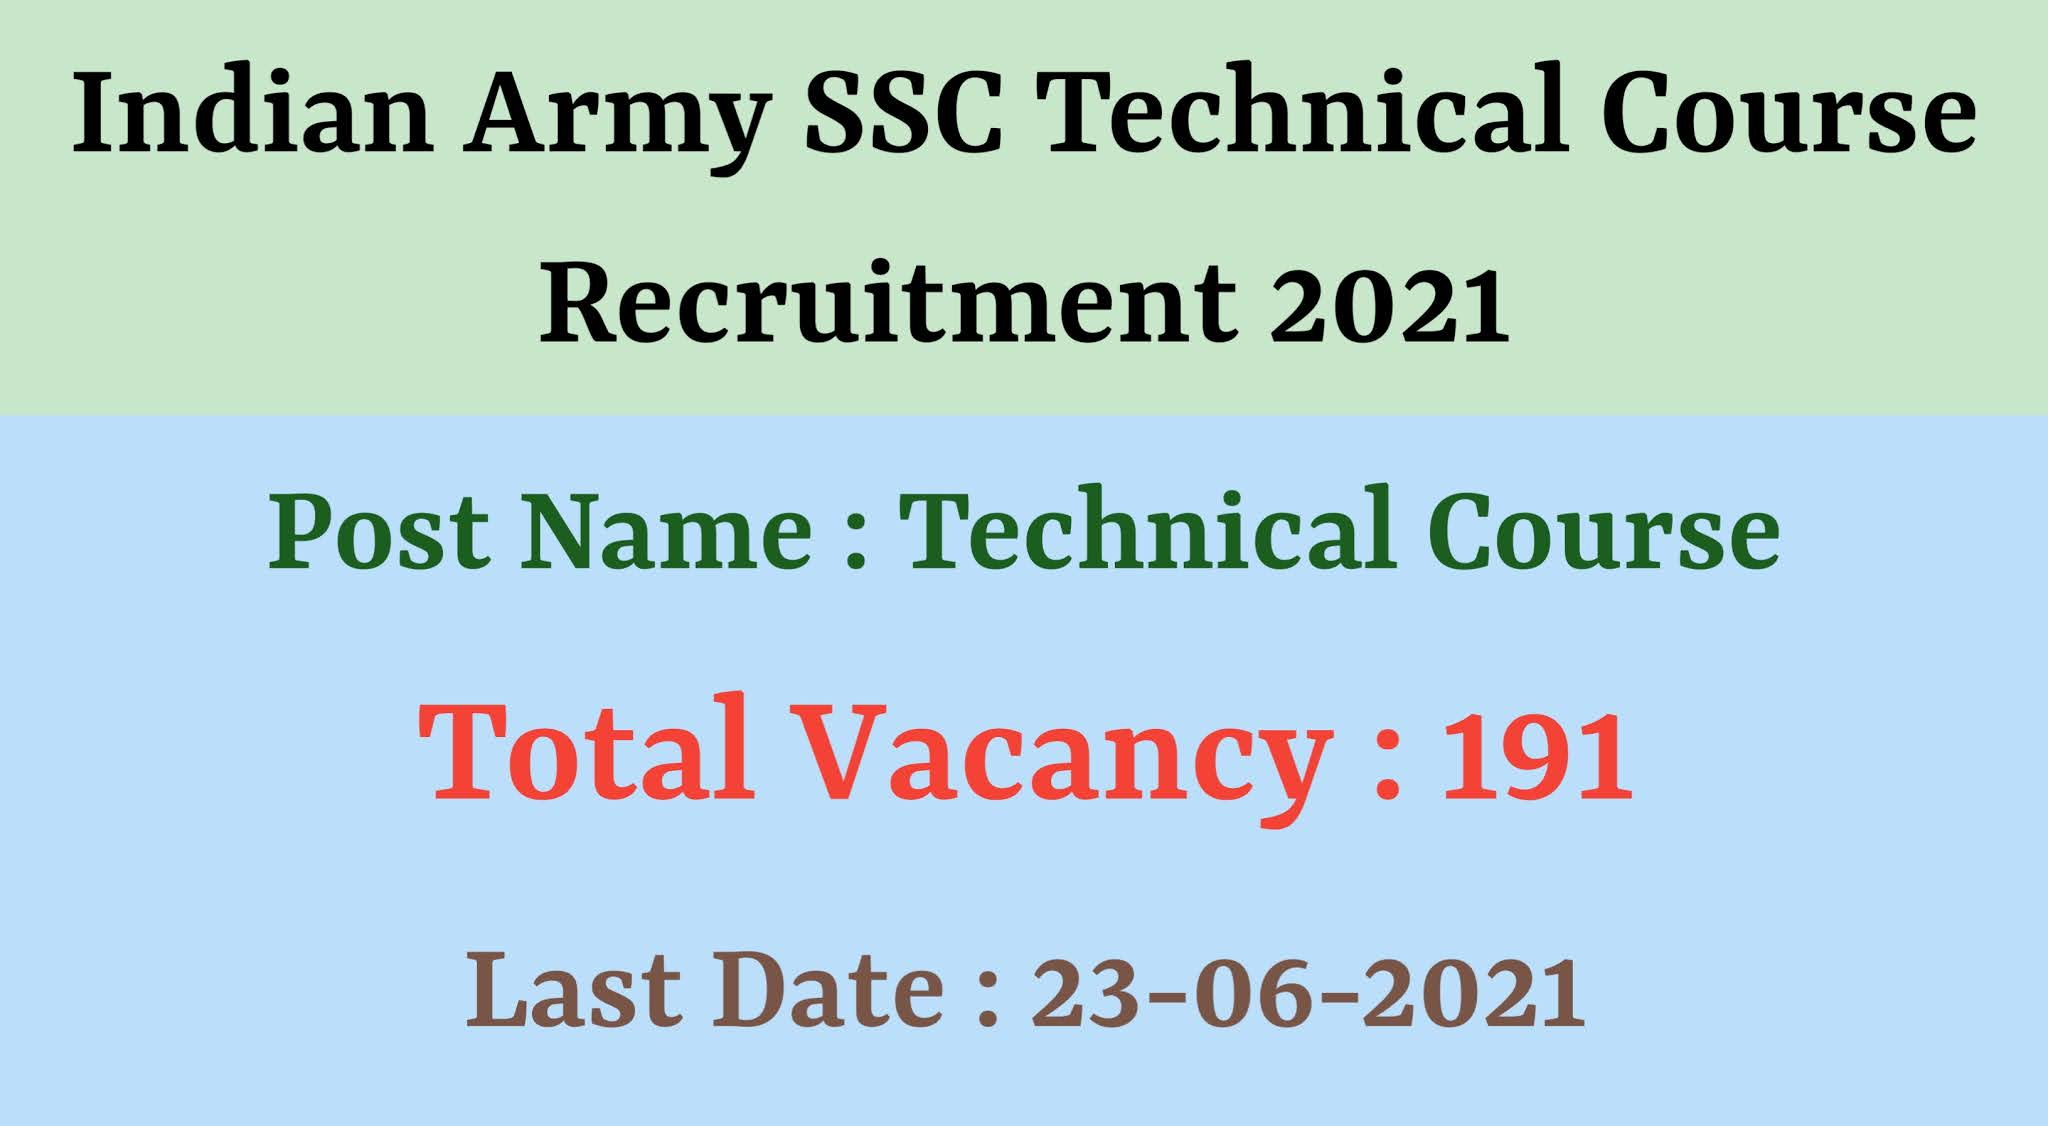 Indian Army SSC Technical Course Recruitment 2021